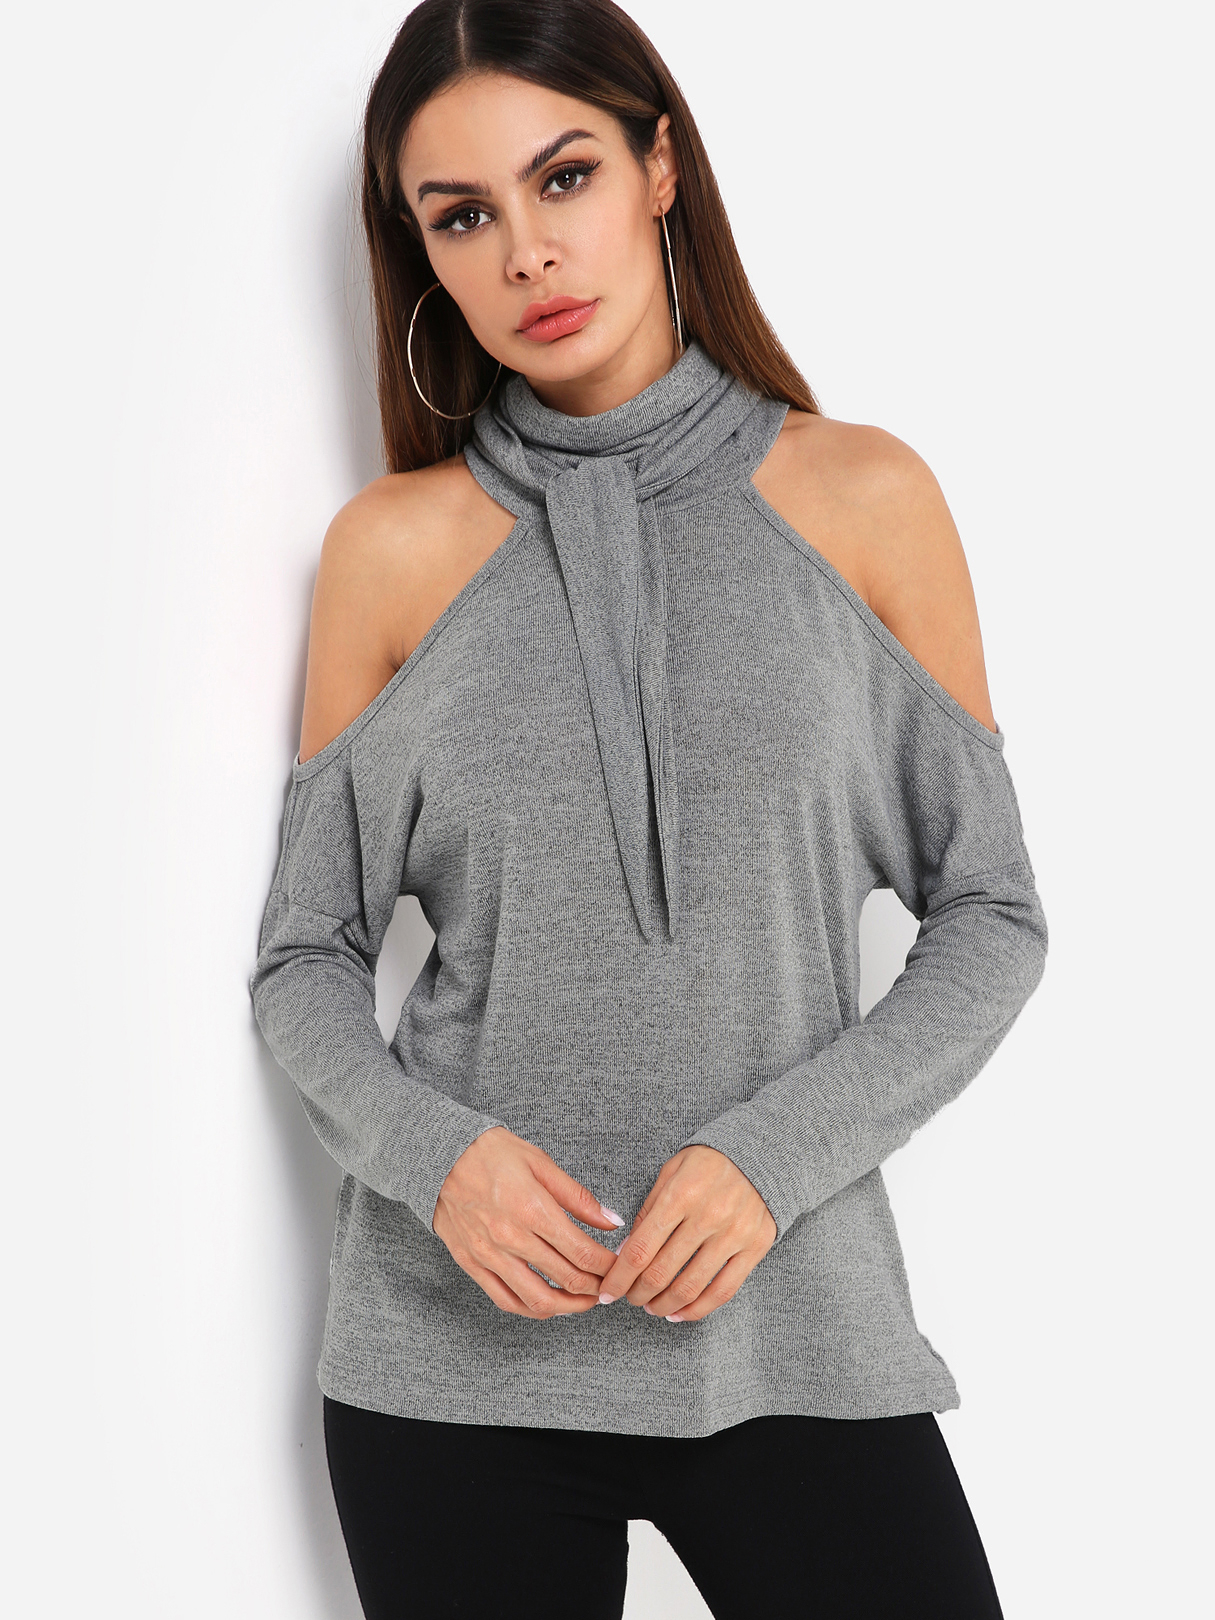 Grey Cold Shoulder Long Sleeves Top With Self-tie Design At Neck